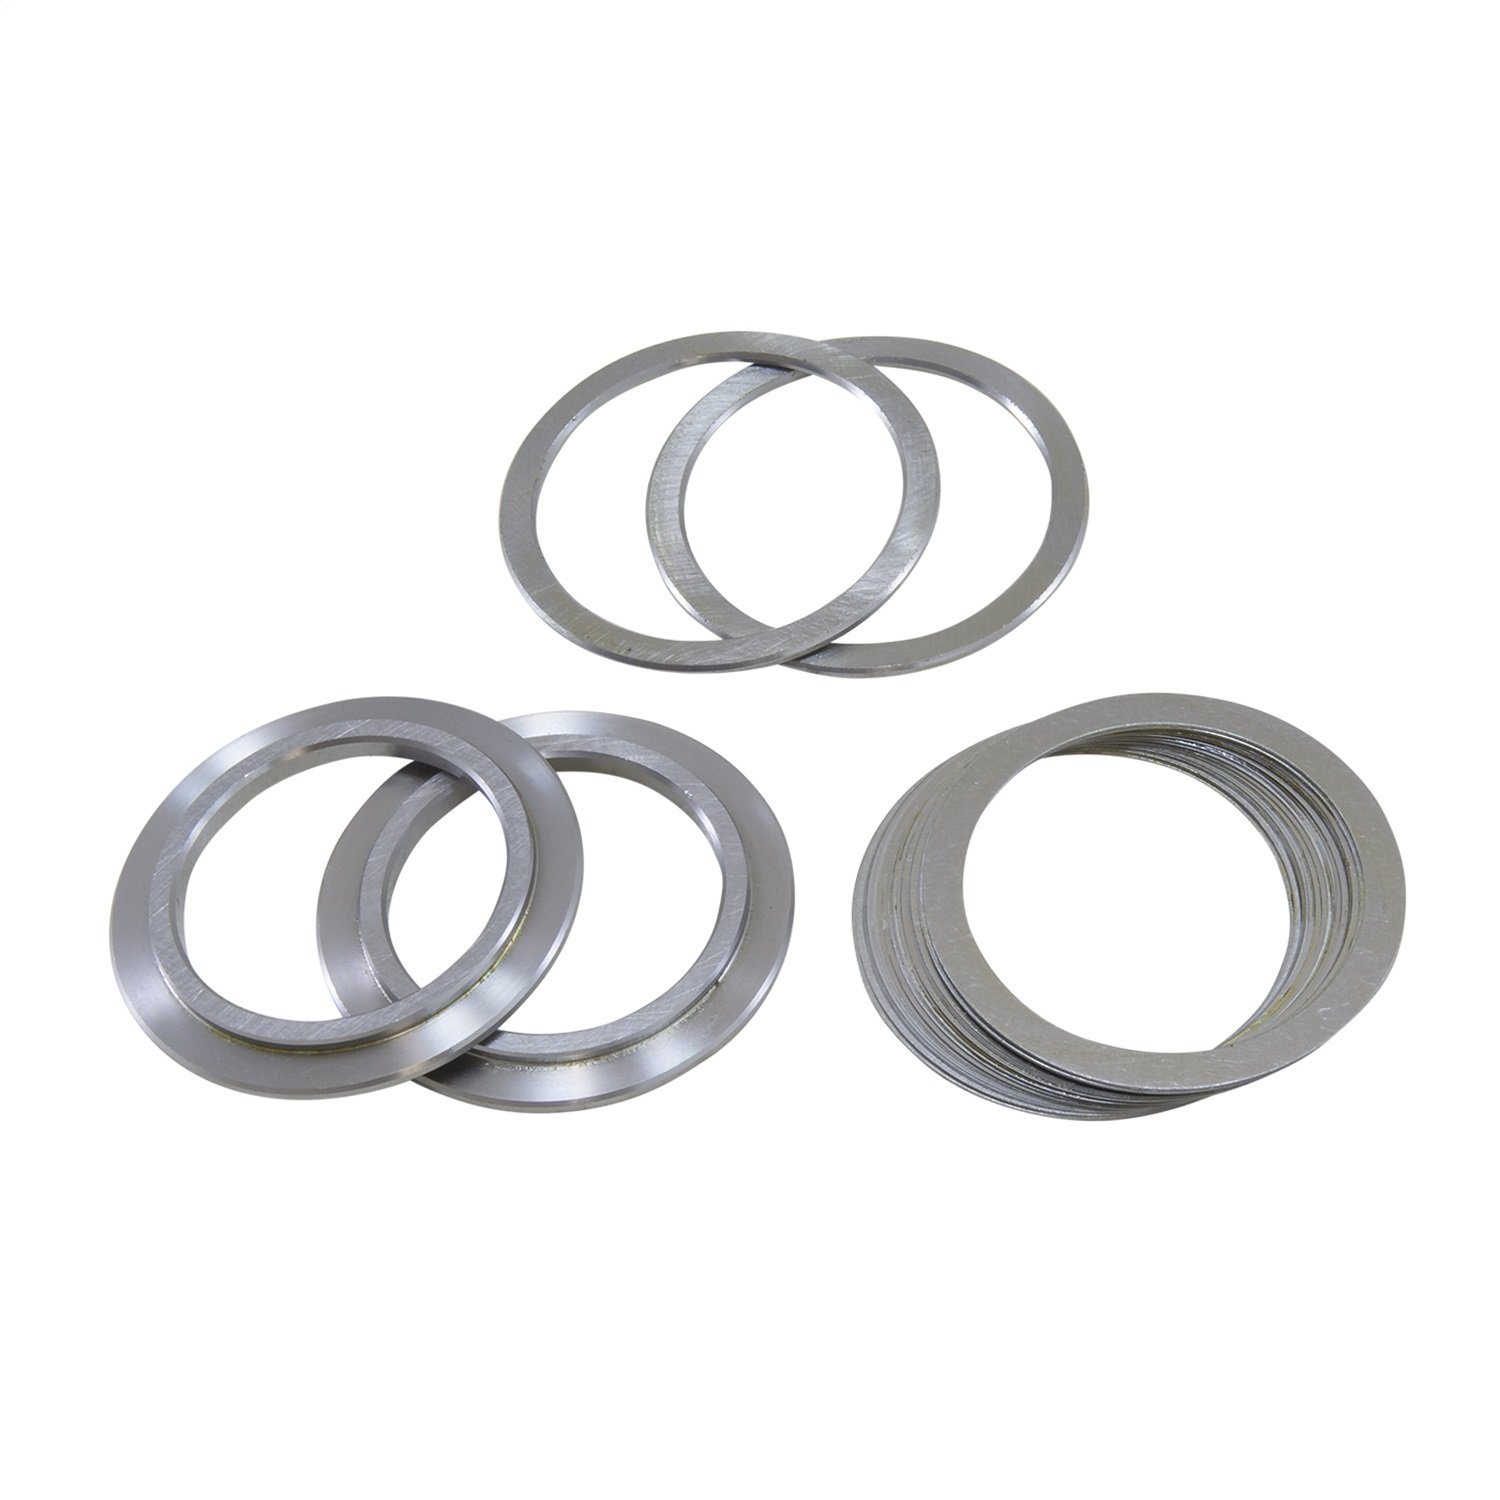 Yukon Gear & Axle (SK SS10) Super Carrier Shim Kit for Ford 7.5″, GM 7.5″, 8.2″ & 8.5